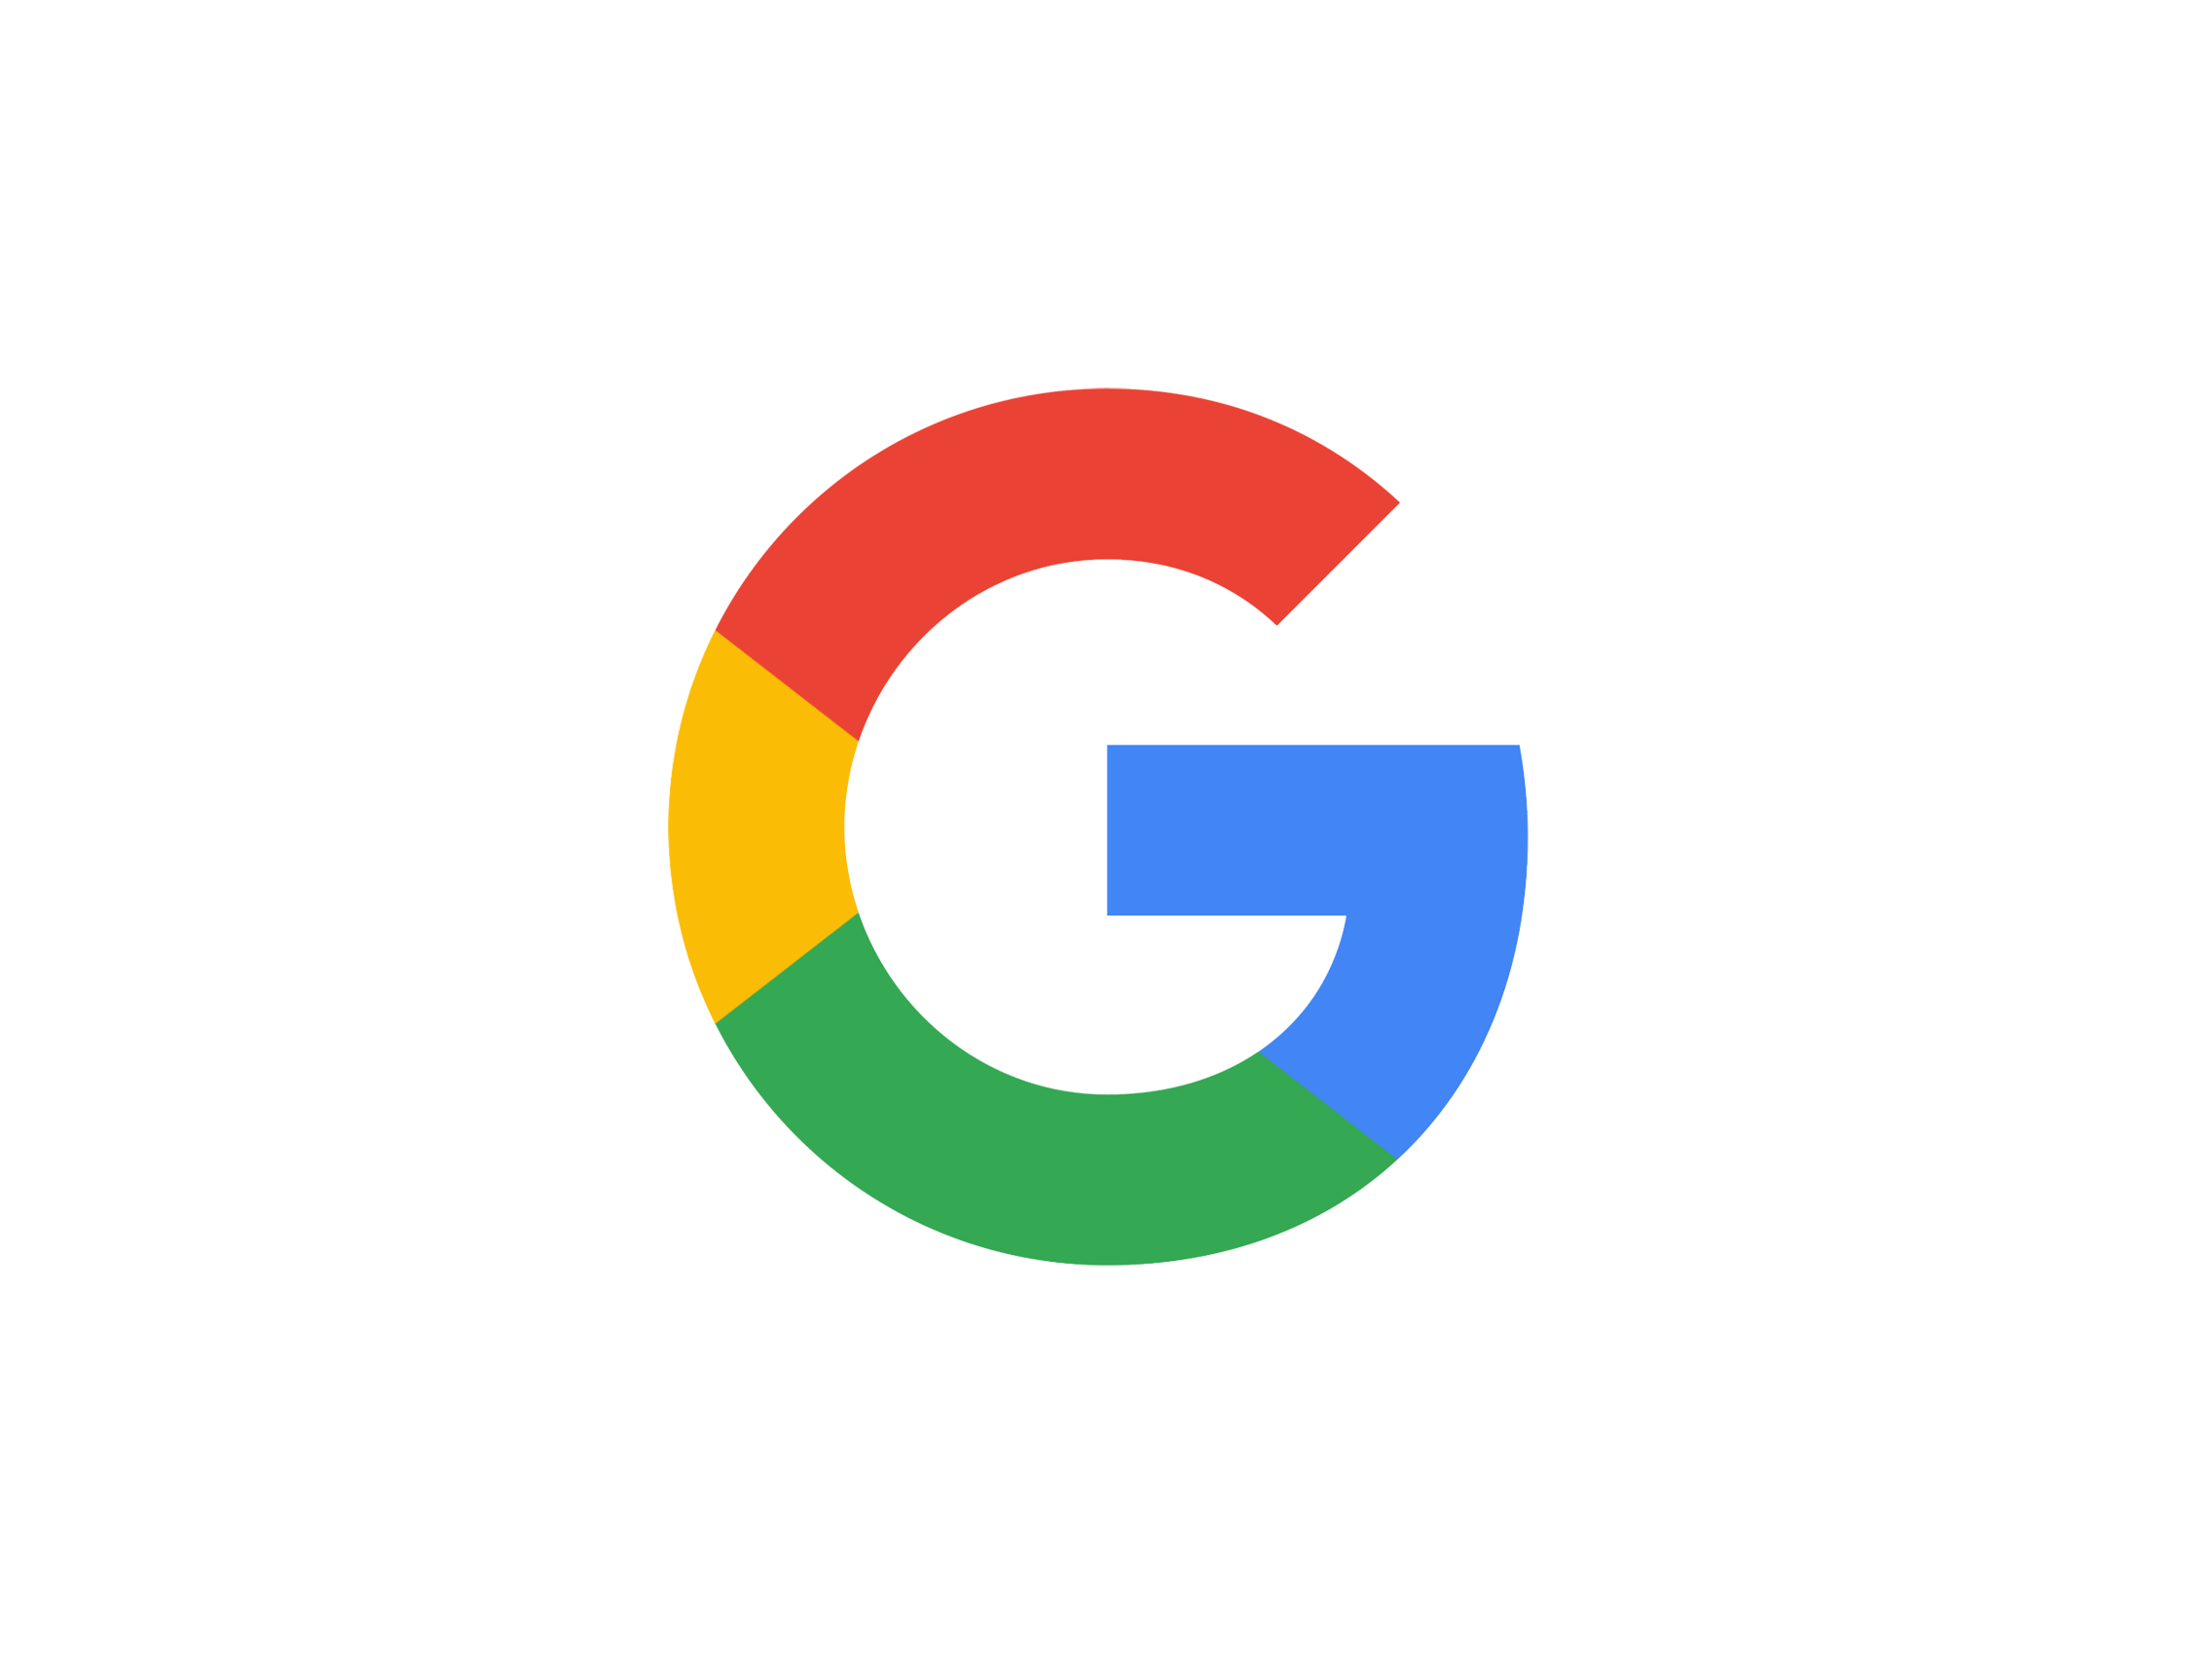 Google logo in red, yellow, green, and blue